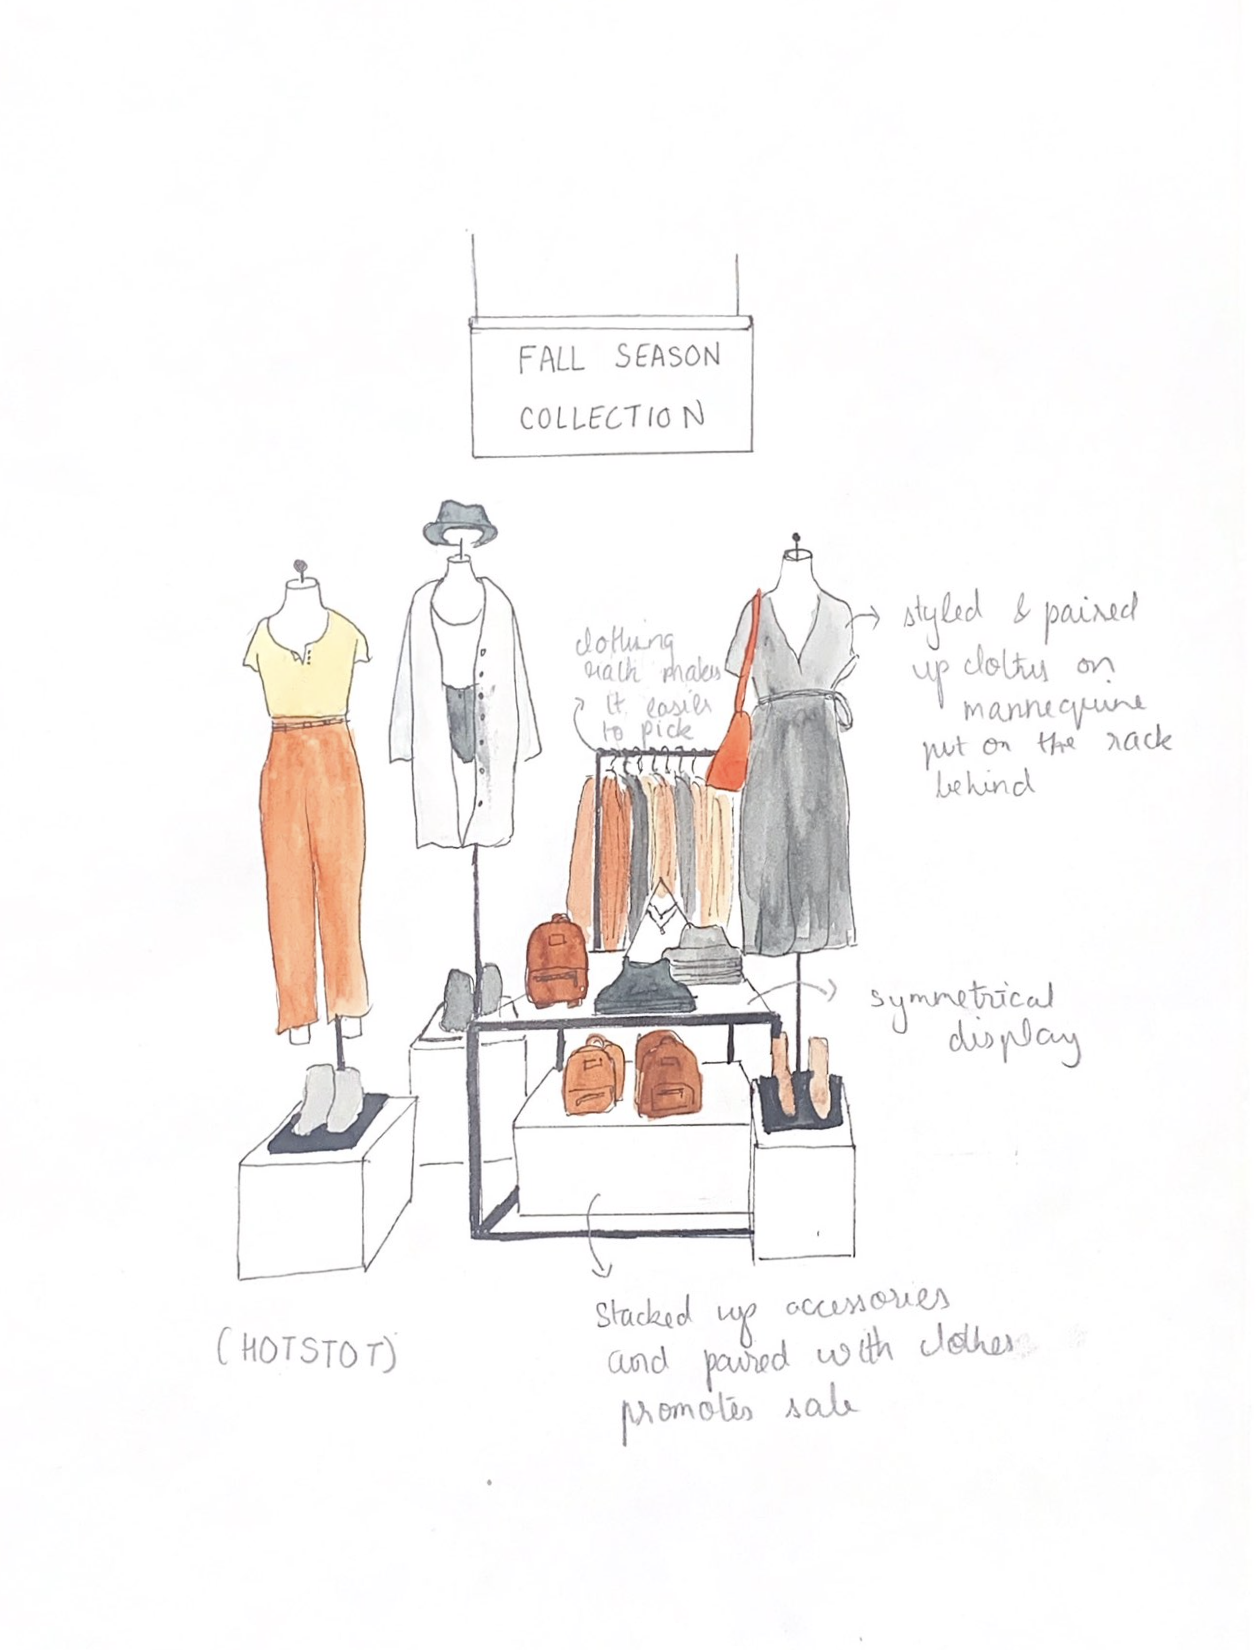 An illustration of a clothing stand design in a retail store